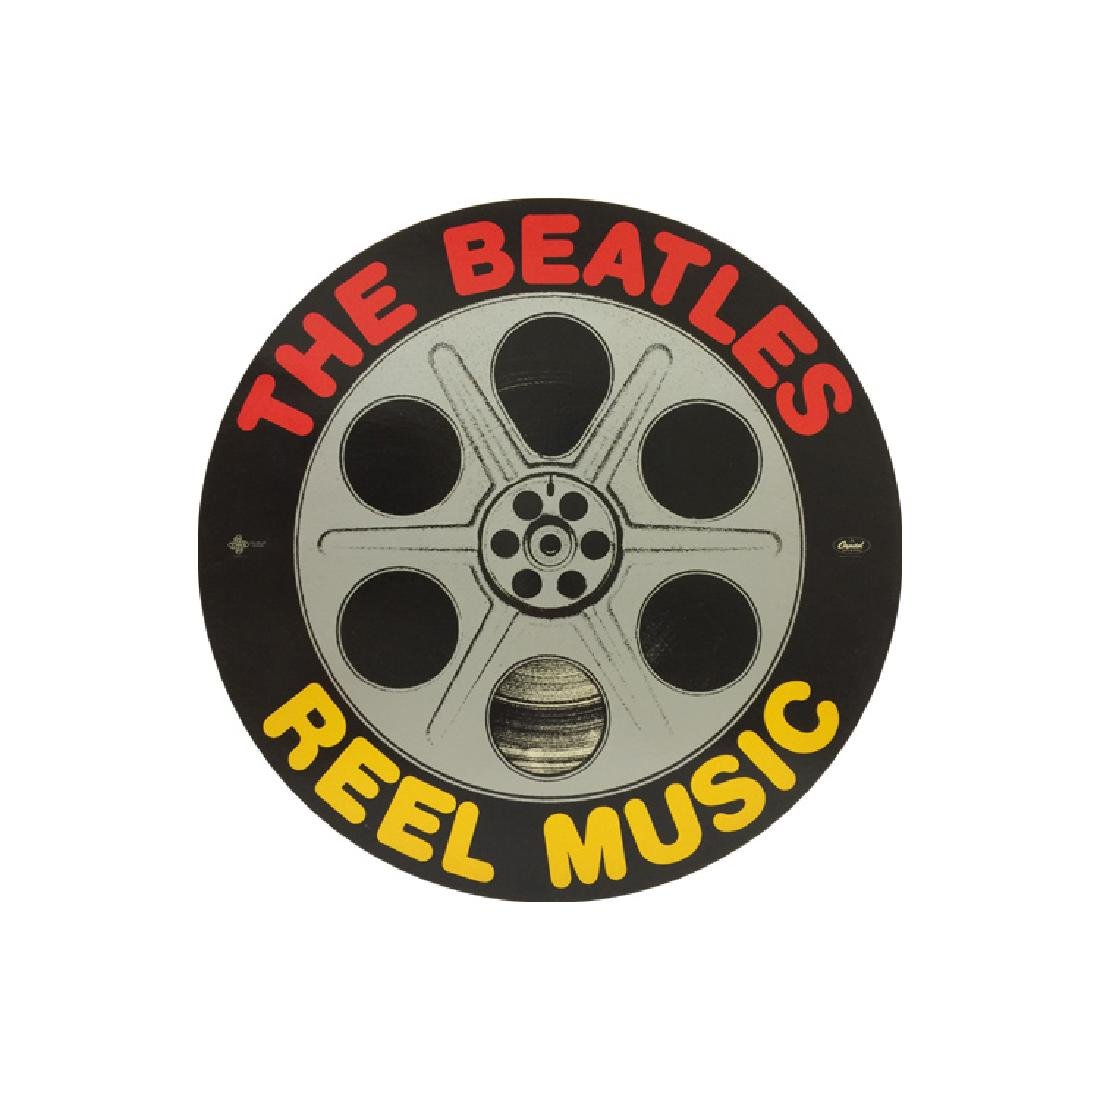 Beatles - Reel Music - 1982 Promotional Poster